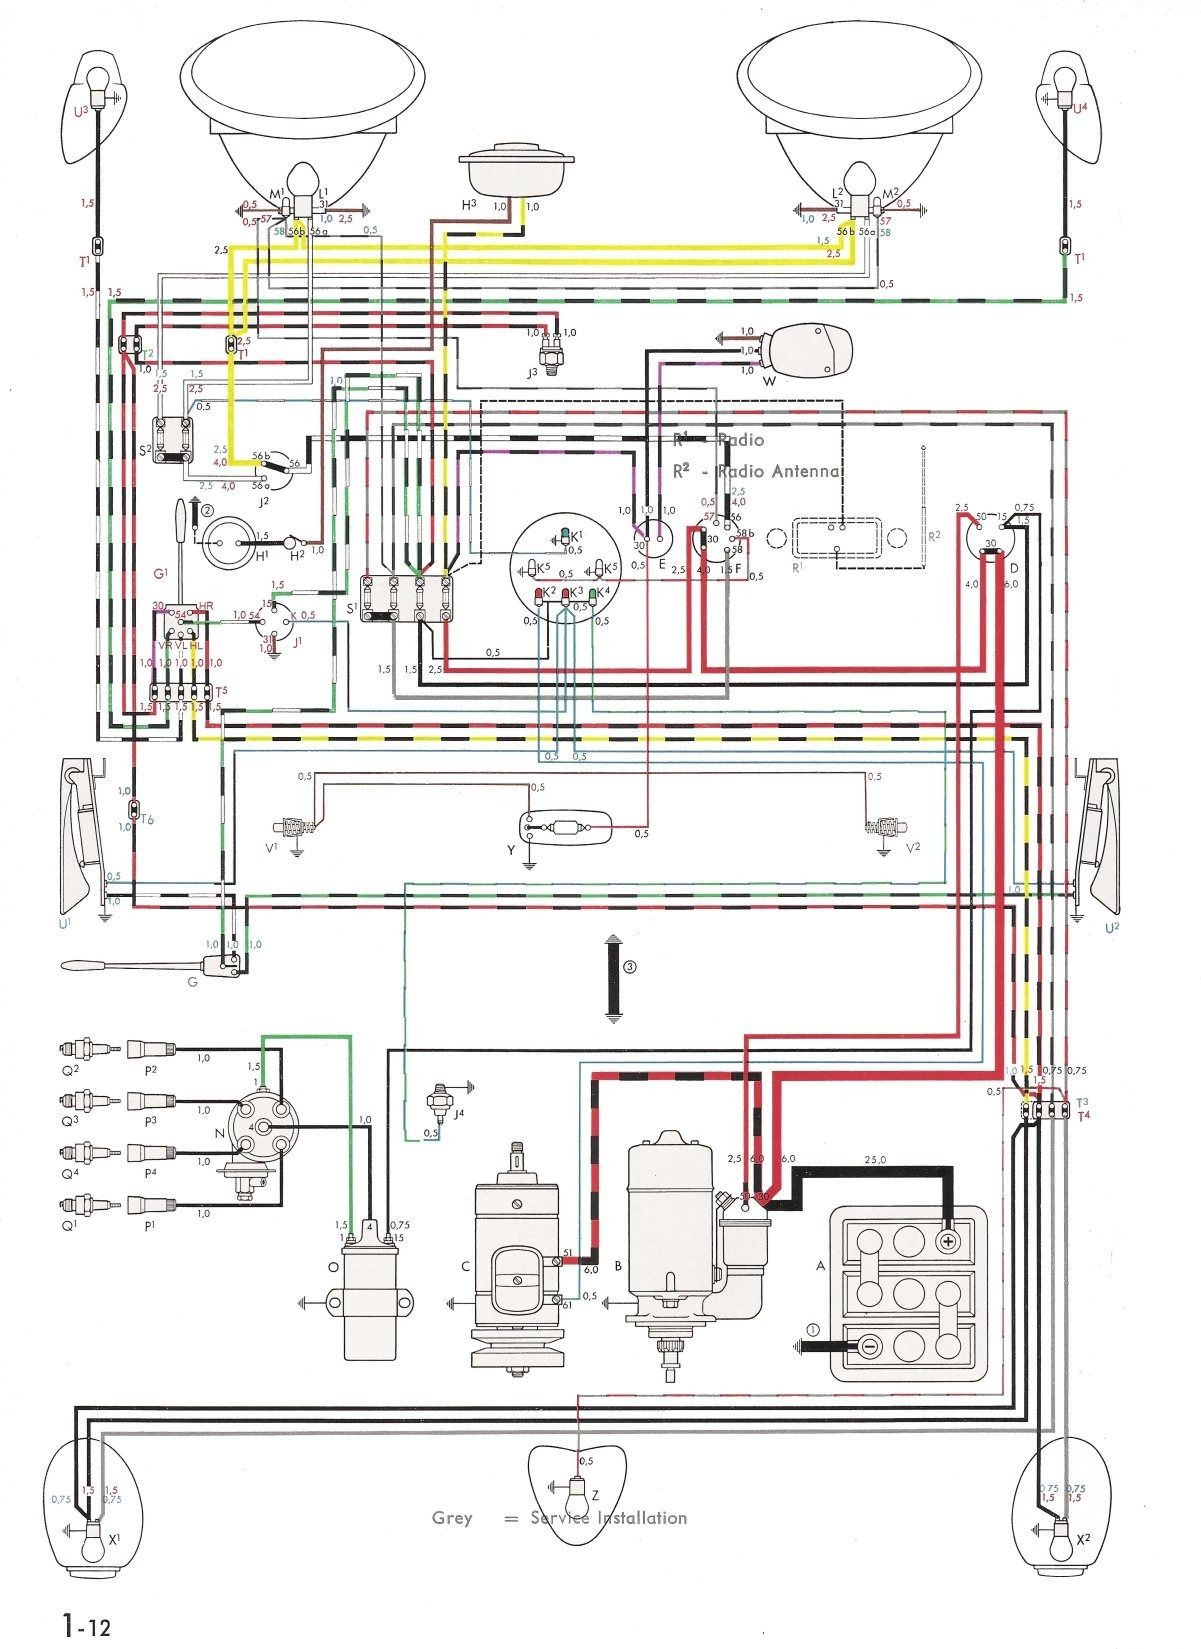 WRG-9303] Wiring Diagram 7 2 Volt Ev on leaf diagram, energy diagram, hertz diagram, fuel diagram, ion diagram, fuse diagram, amp diagram, speed diagram, voltmeter diagram, ohm diagram, mustang diagram, fusion diagram, battery diagram, cobalt diagram, ats diagram, color diagram, power diagram, focus diagram, tesla diagram, oil diagram,